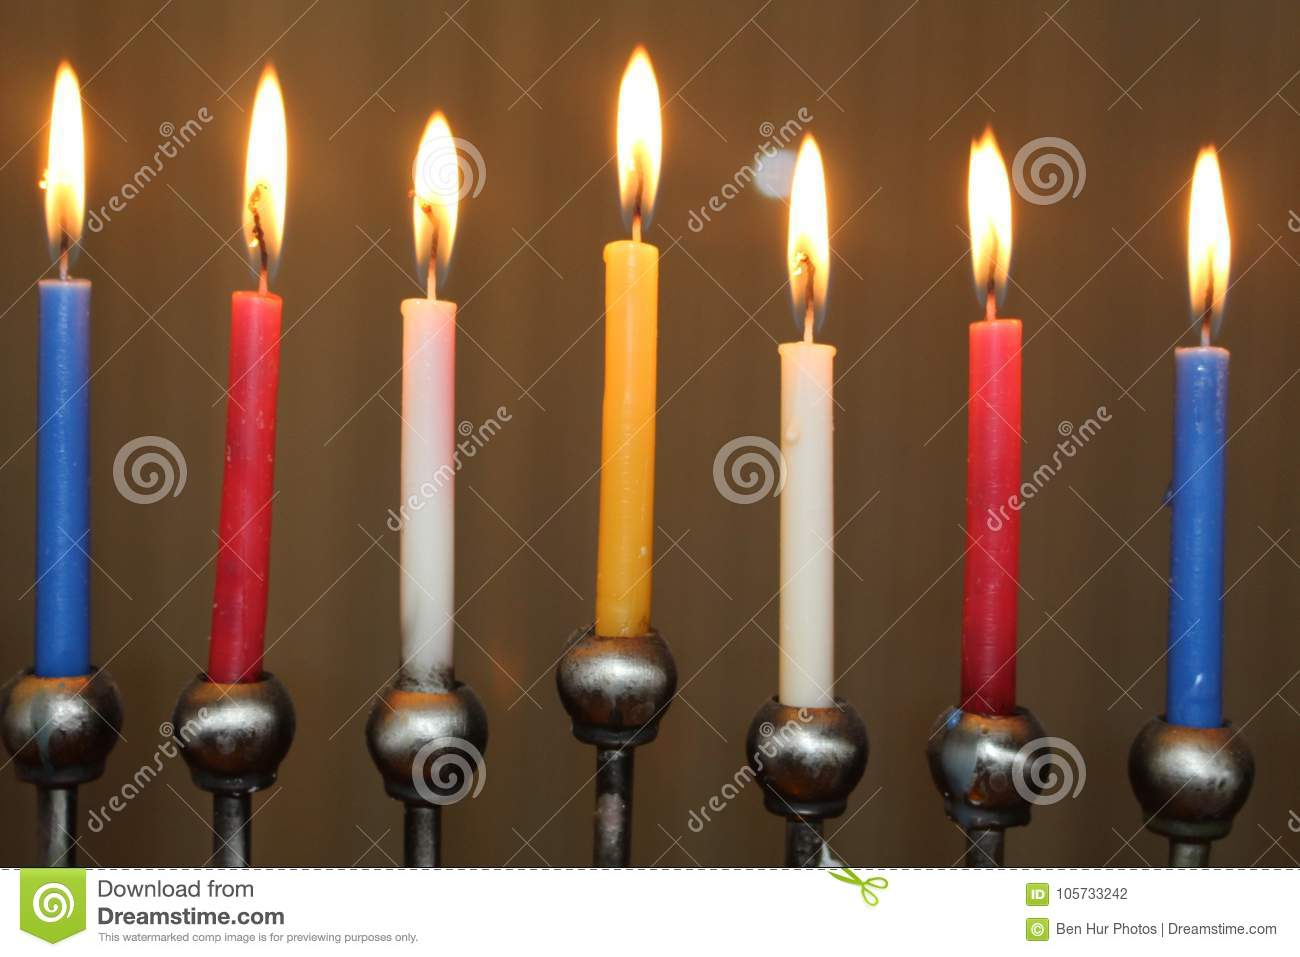 Jewish Festival Of Lights Hanukkah Holiday Menorah Candles In Red